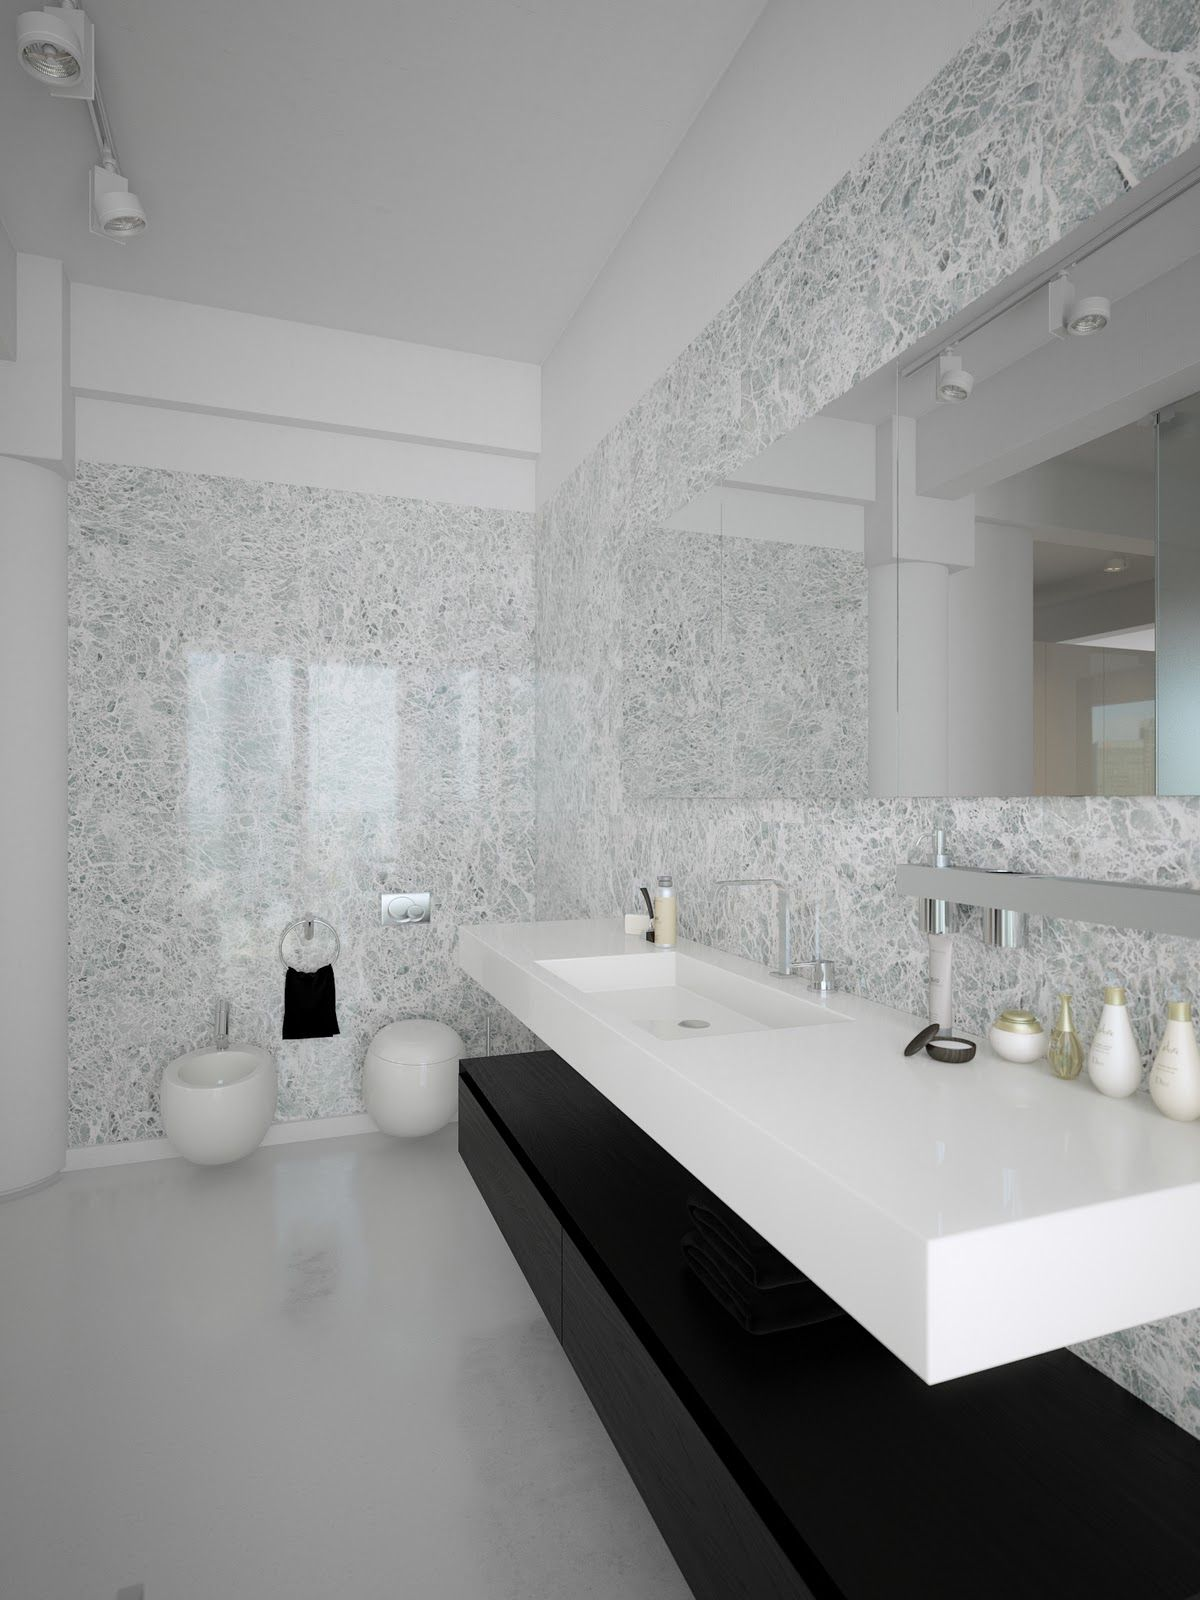 Coolest minimalist modern bathroom design contemporary for Sophisticated bathroom design